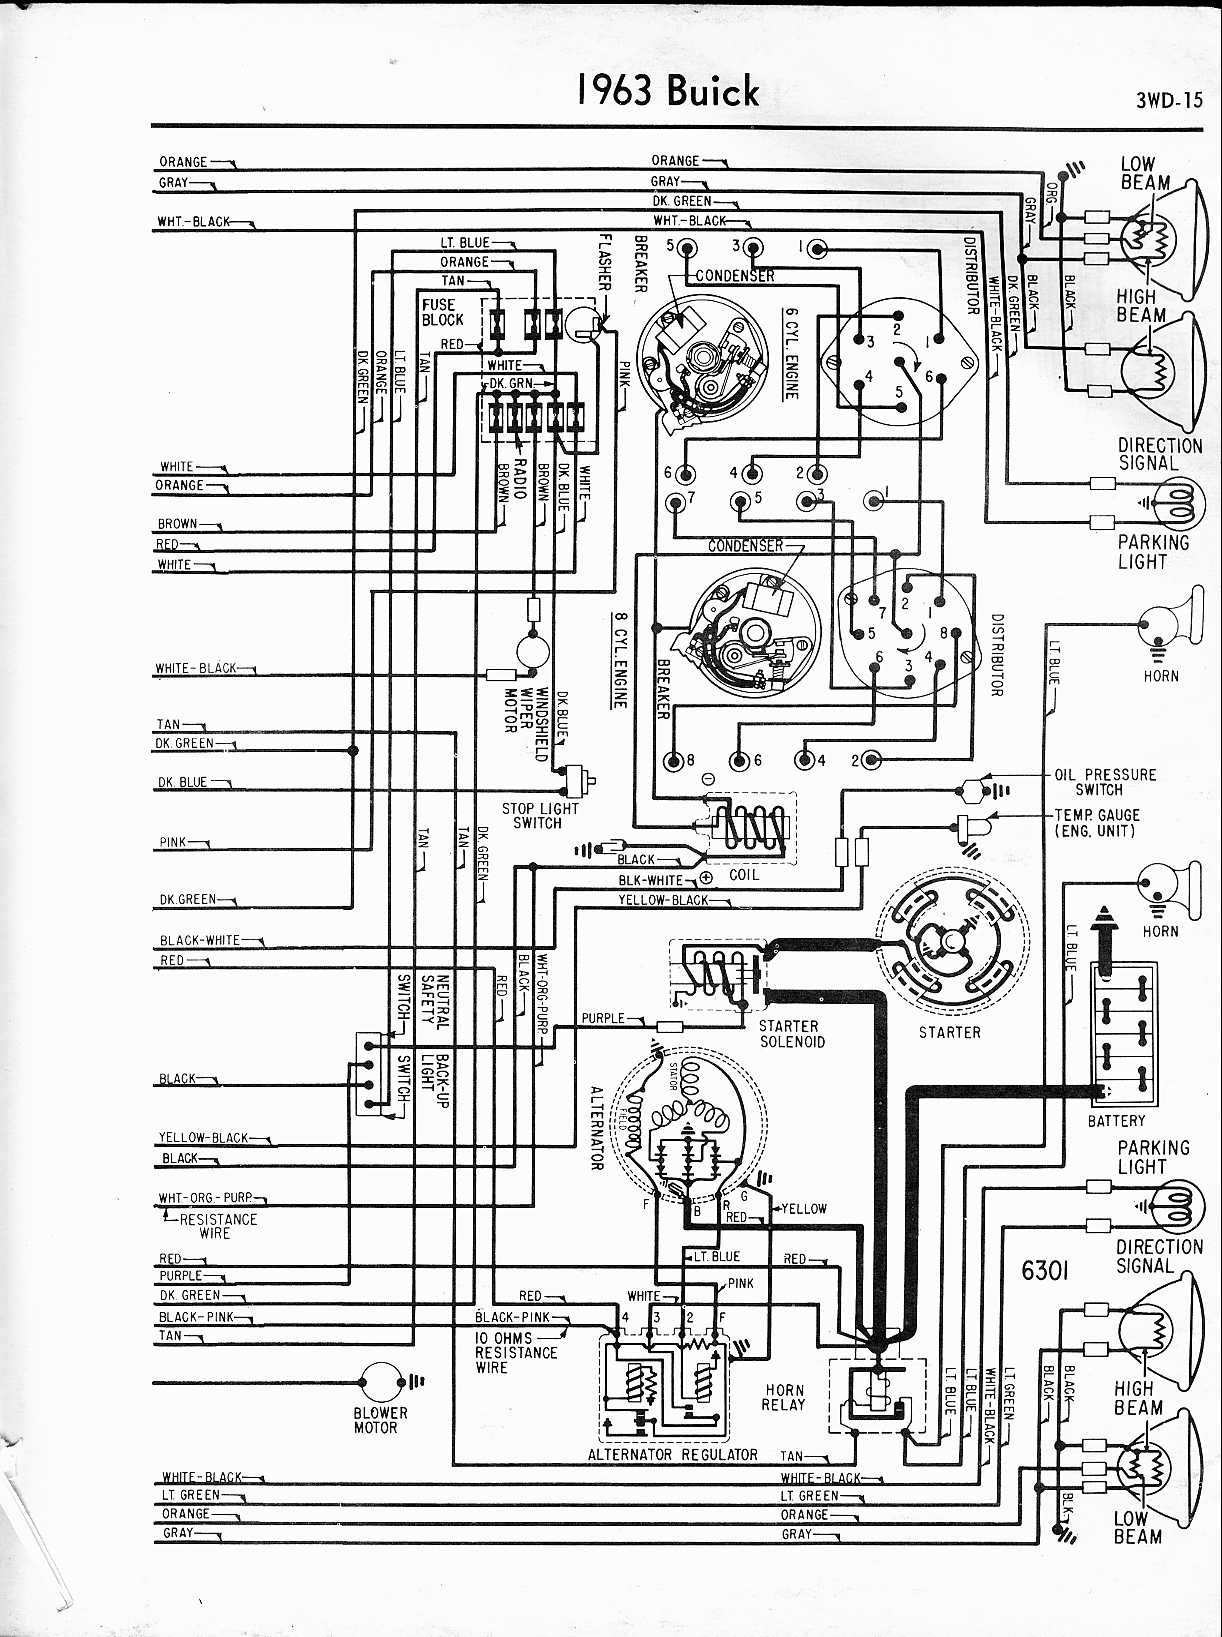 1969 Buick Wiring Diagram As Well Ford Ignition Content Resource Camaro Color 71 Pictures U2022 Rh Mapavick Co Uk